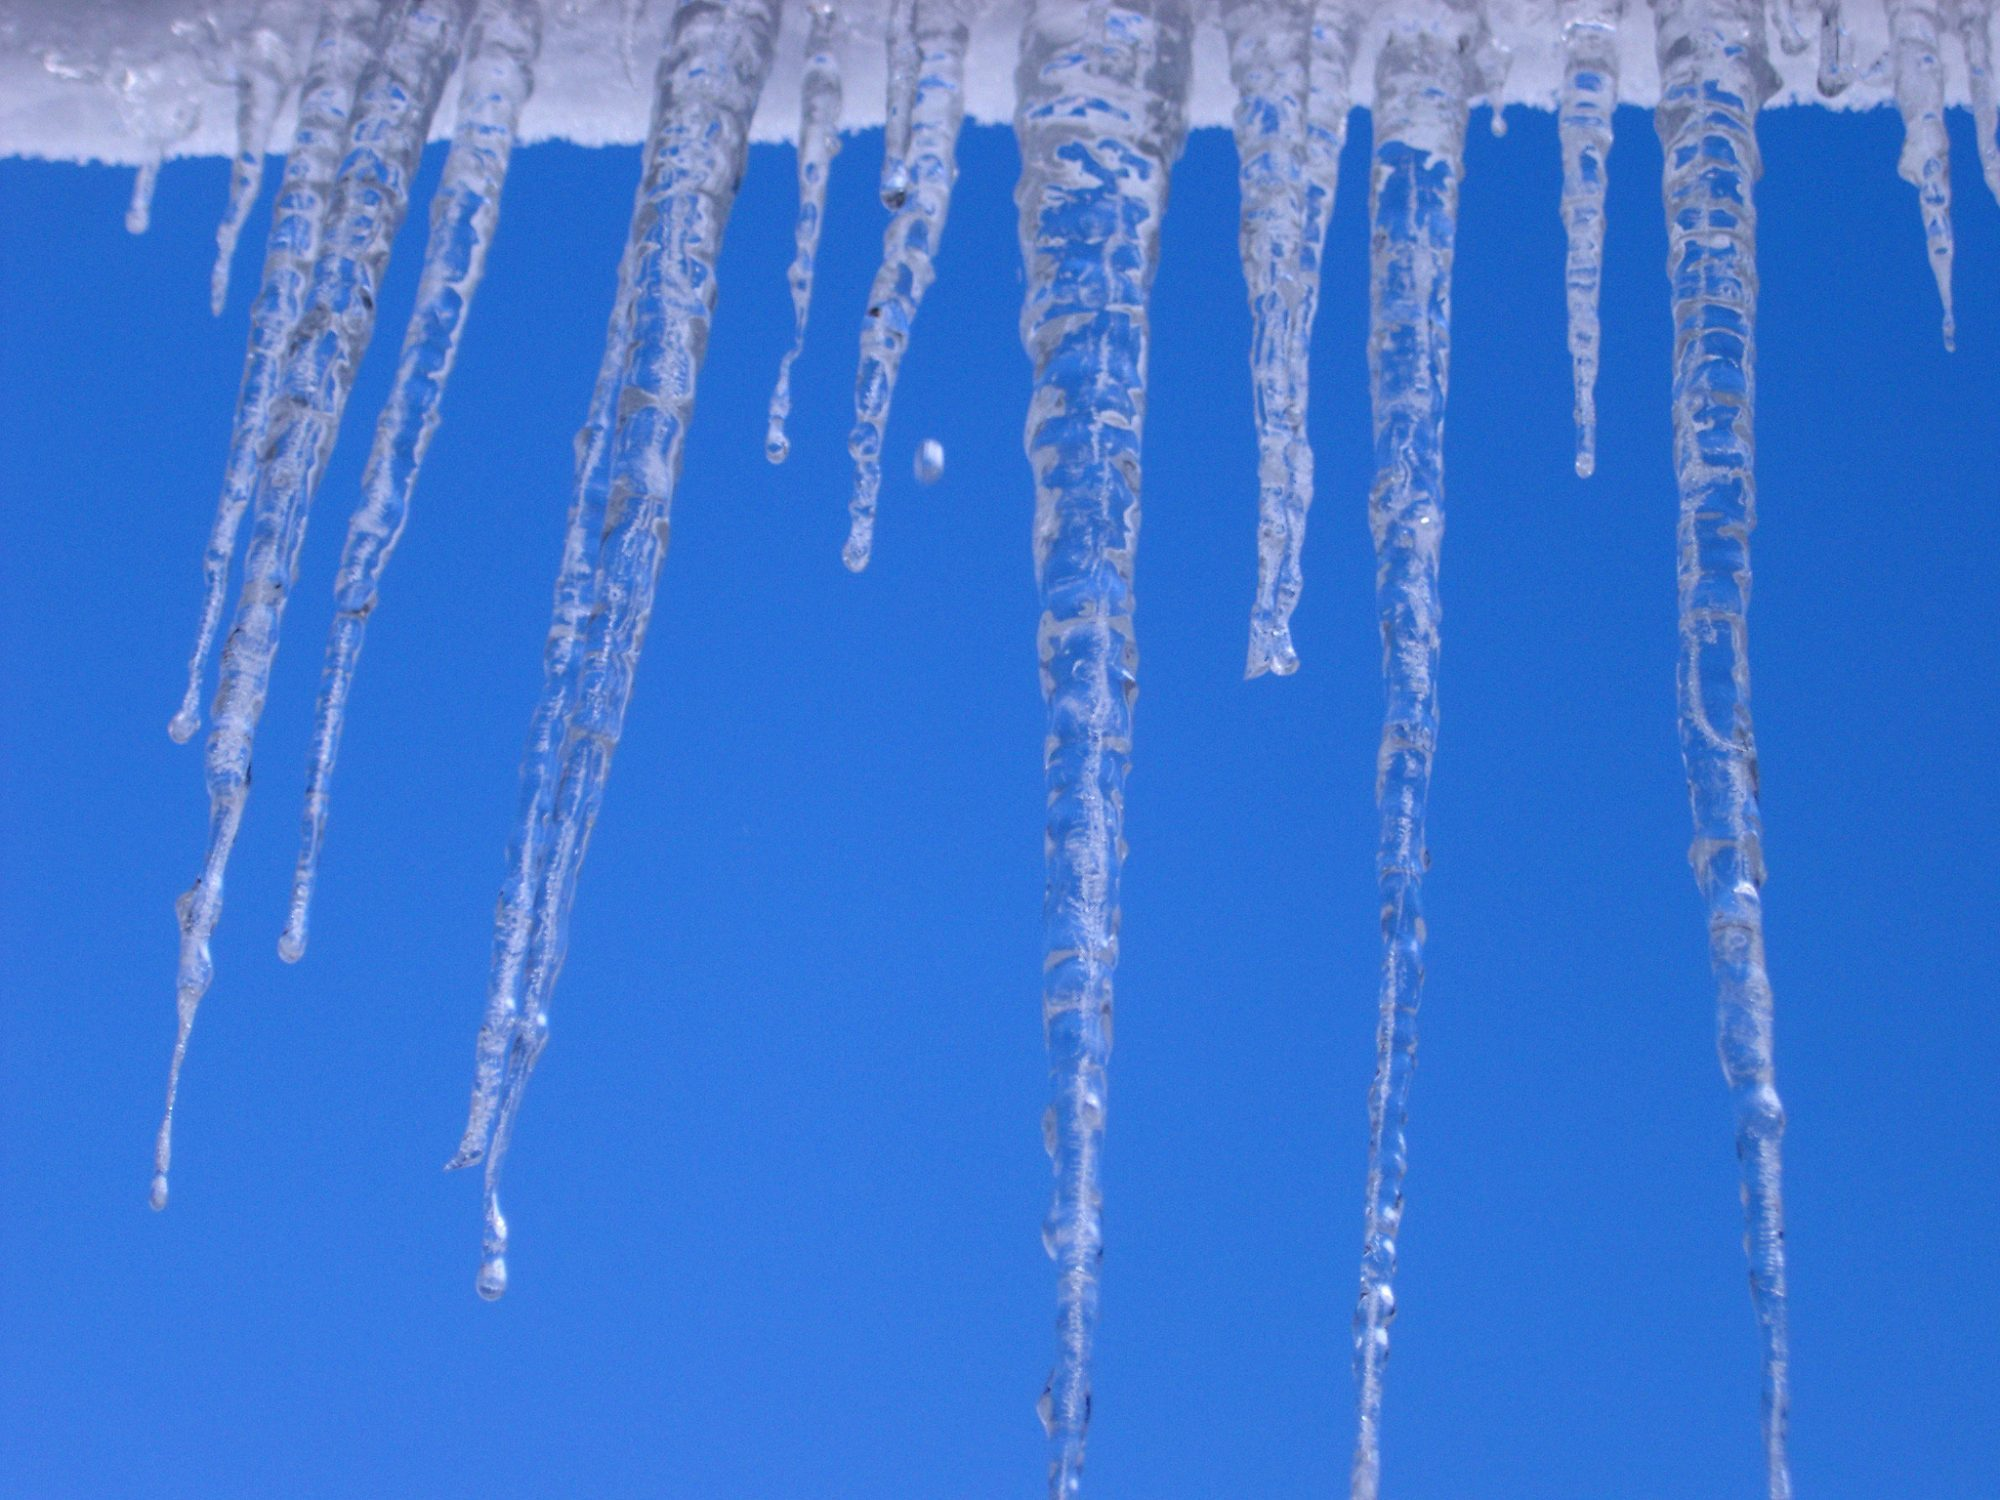 Watch Out For Falling Icicles - The Reykjavik Grapevine